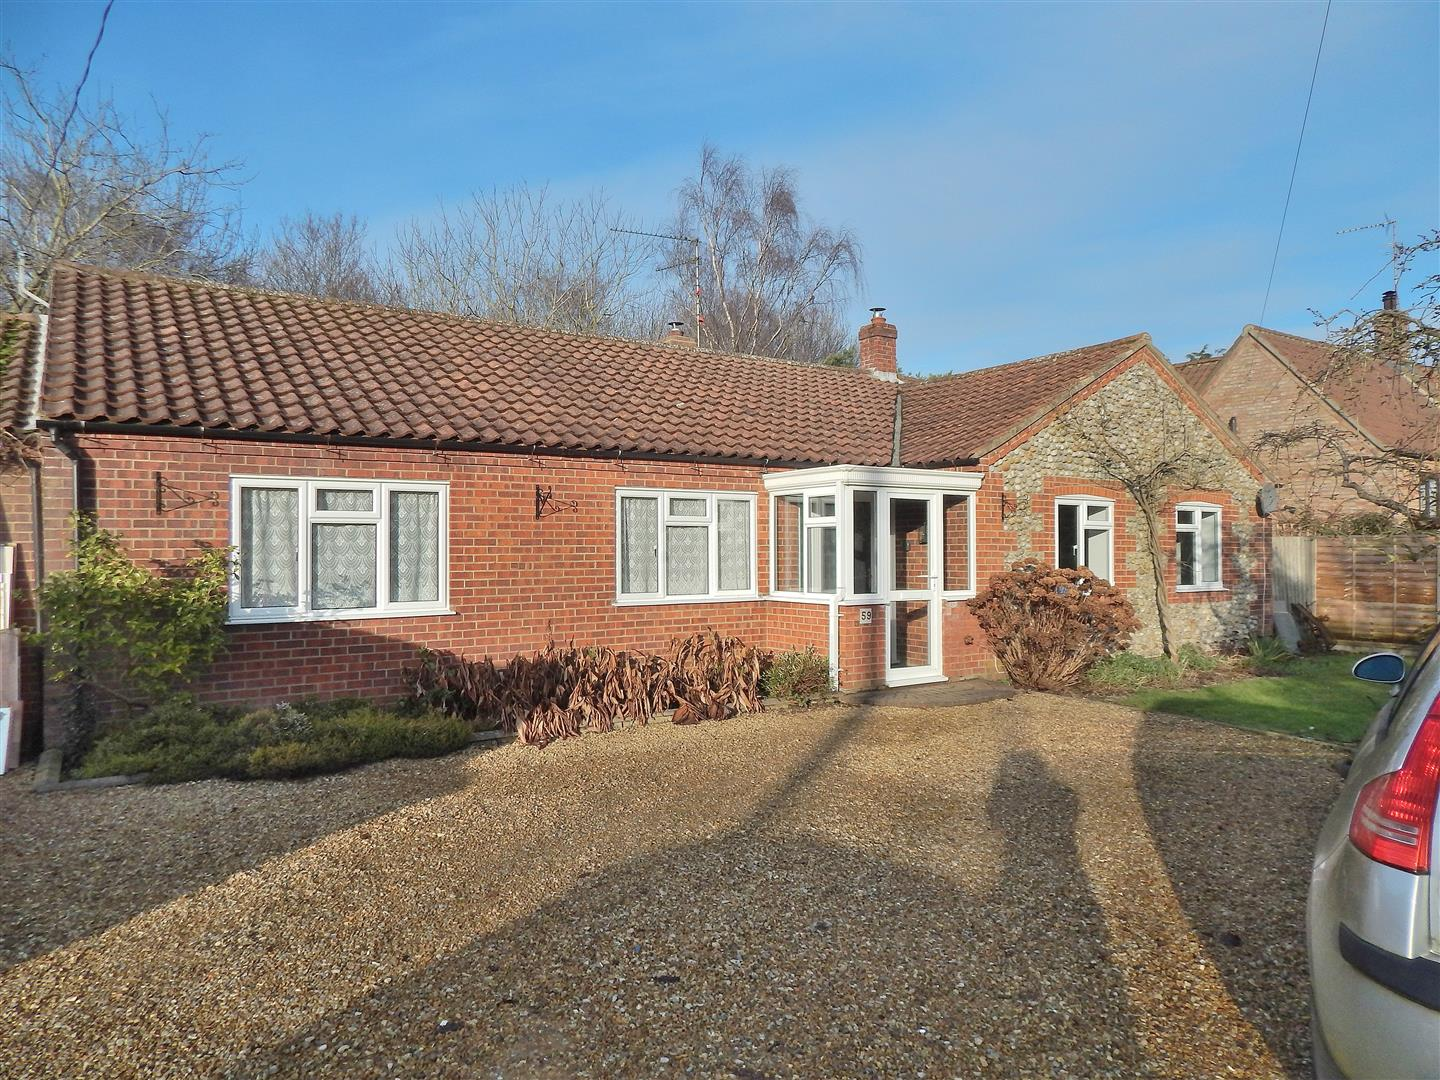 3 bed detached bungalow for sale in King's Lynn, PE31 6QW 0